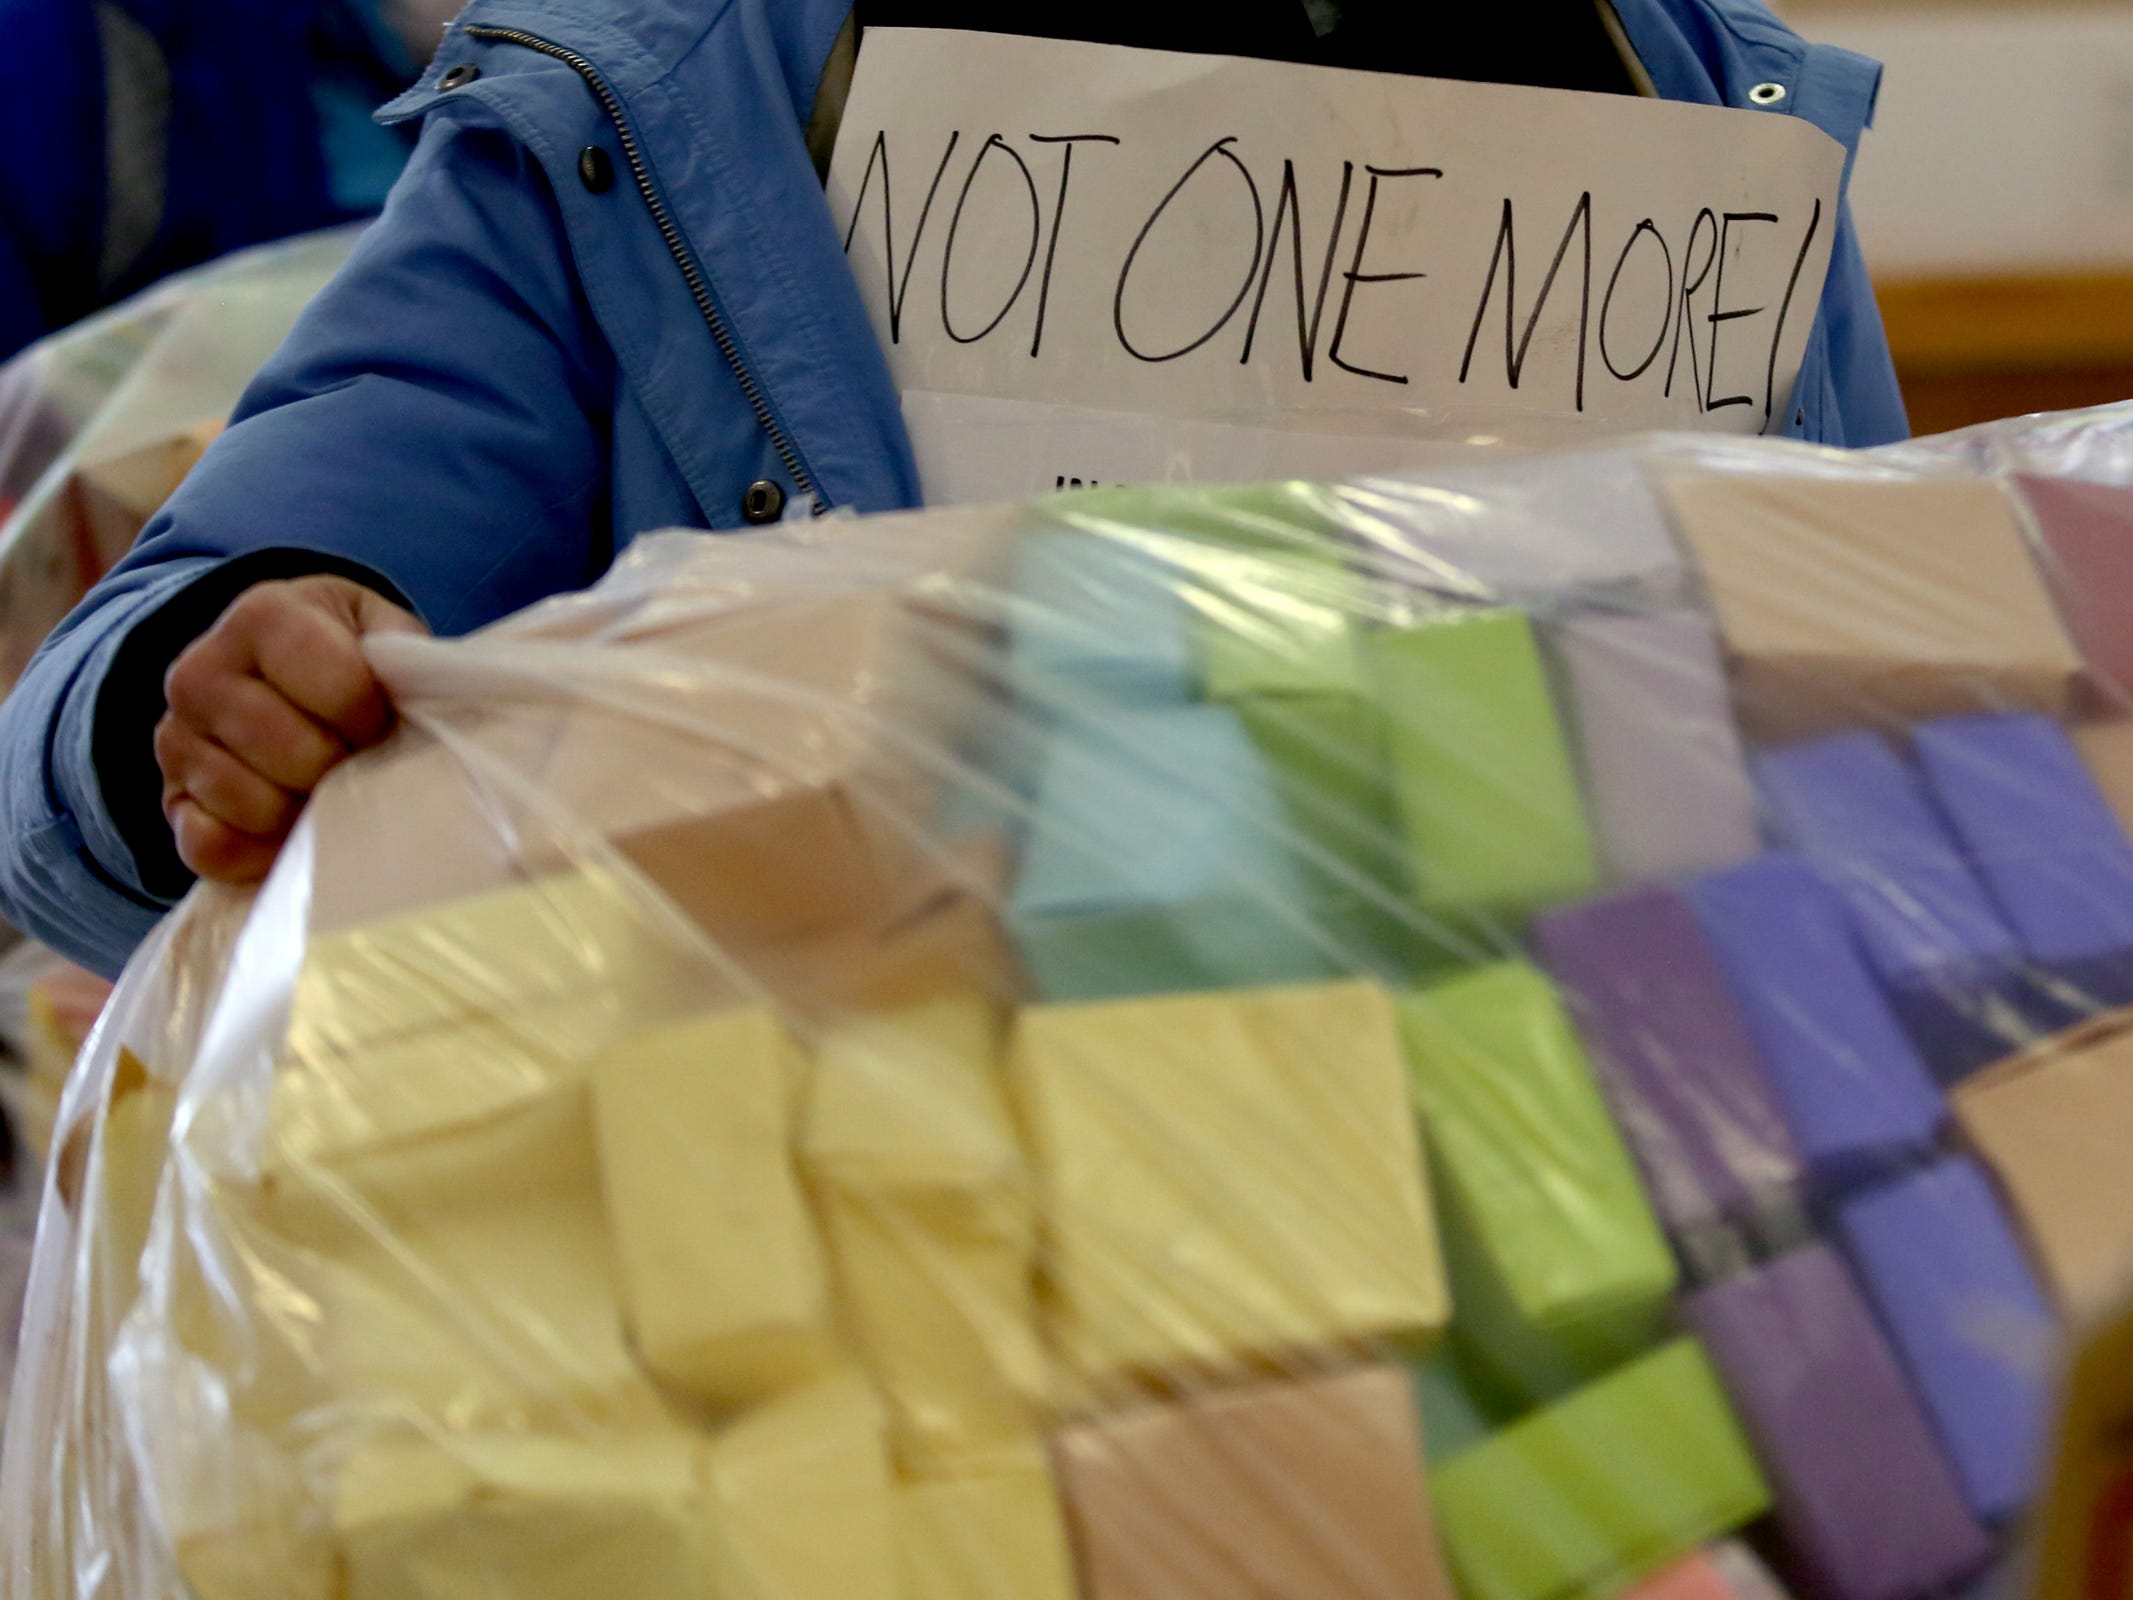 Carol Tenenbaum, of Portland, and others deliver and display more than 37,000 handmade origami boxes, representing victims of gun violence, at the Oregon State Capitol in Salem on Friday, Feb. 15, 2019. The Soul Box Project, started by Portland artist Leslie Lee, aims to reveal the enormity of the gun fire epidemic.